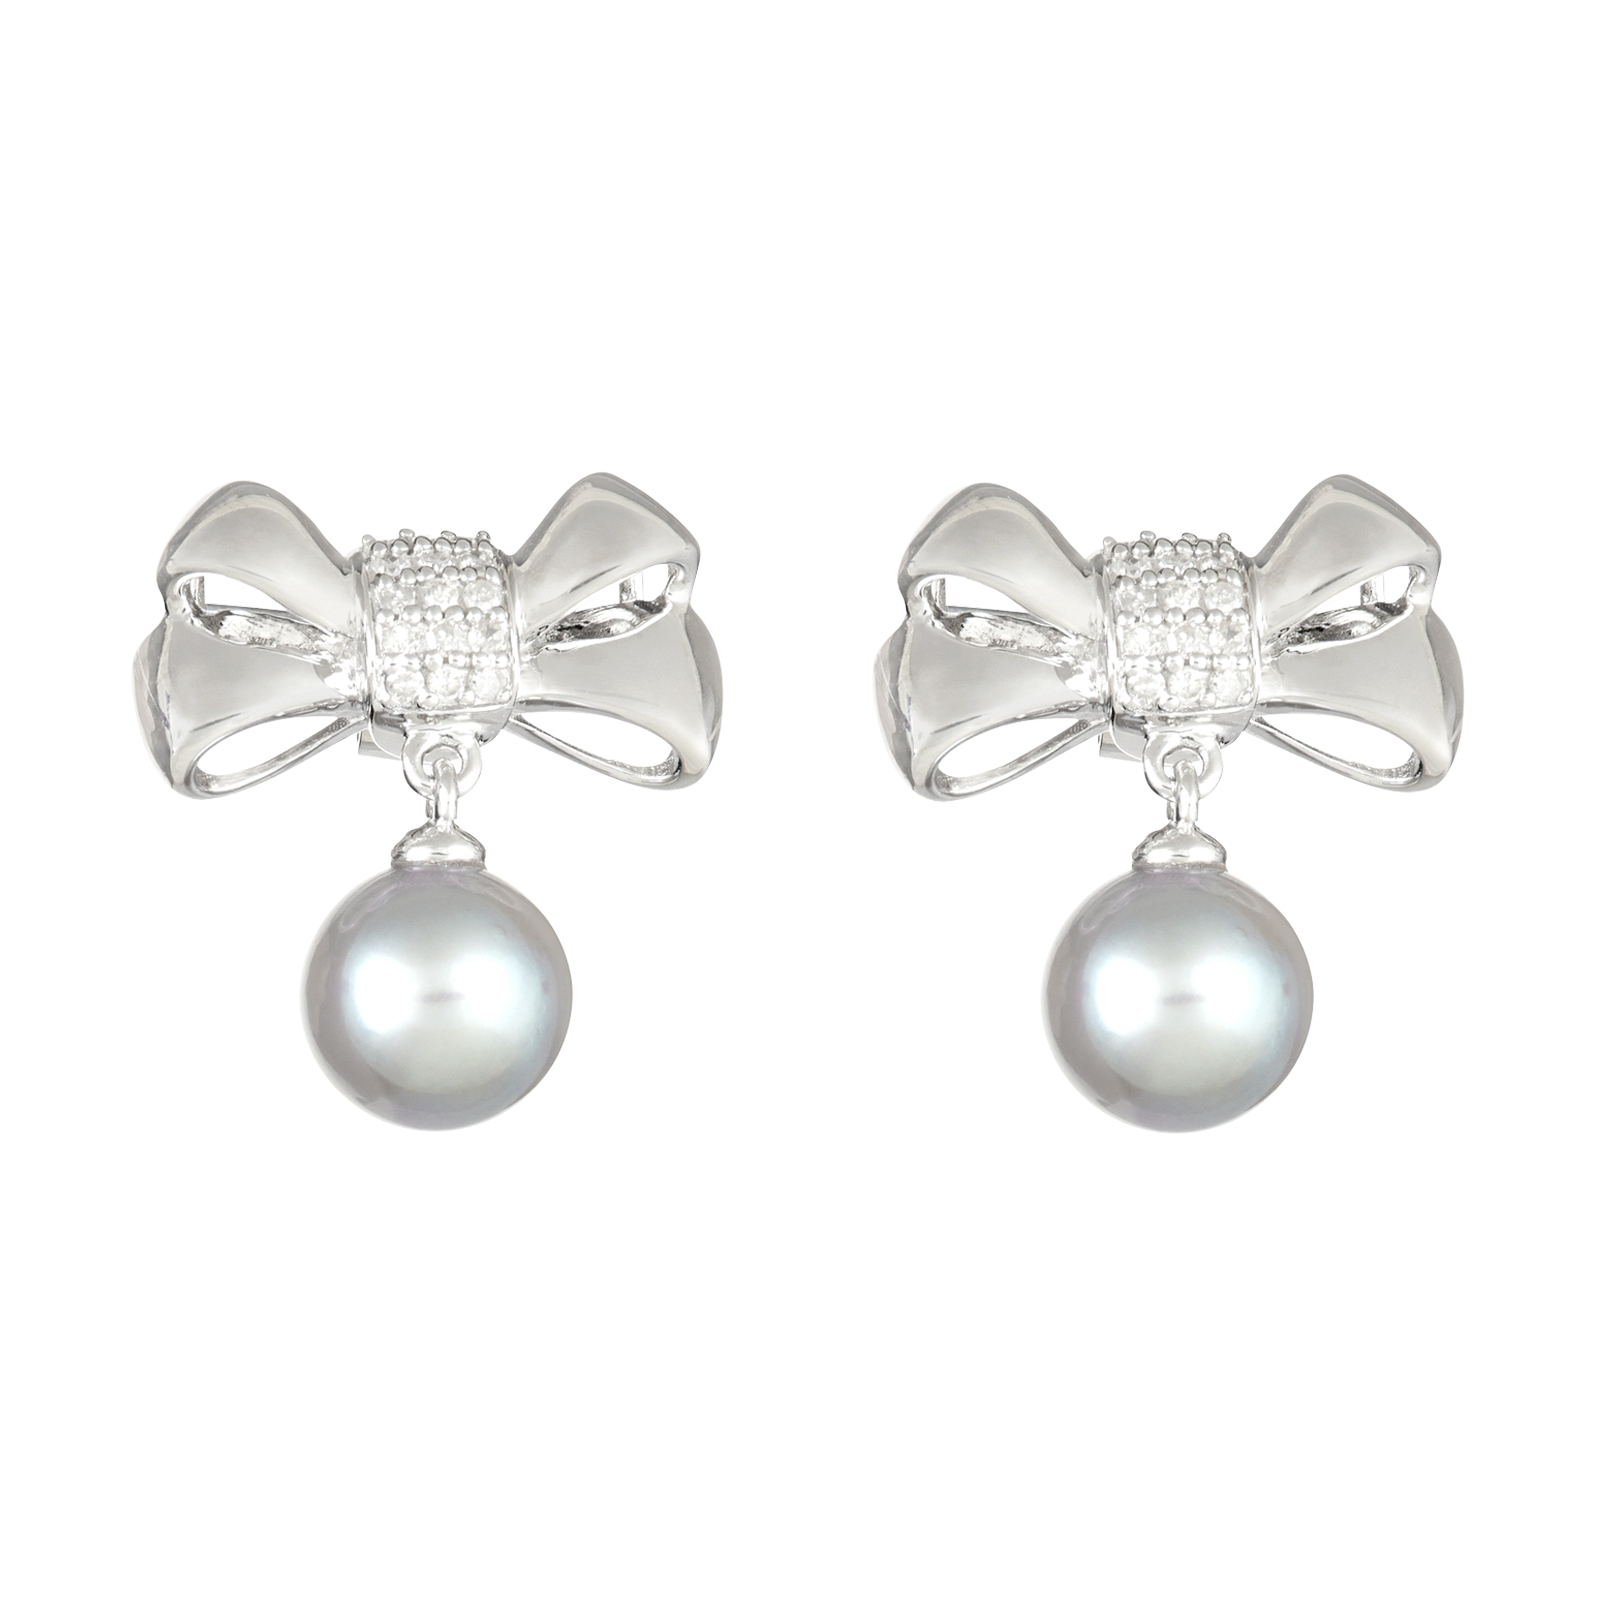 Ladies Sterling Silver .20 cttw Diamond Bow and Genuine Gray Pearl Dangle Earrings PartNumber: 04439955000P KsnValue: 04439955000 MfgPartNumber: E22322SSPG000A10A